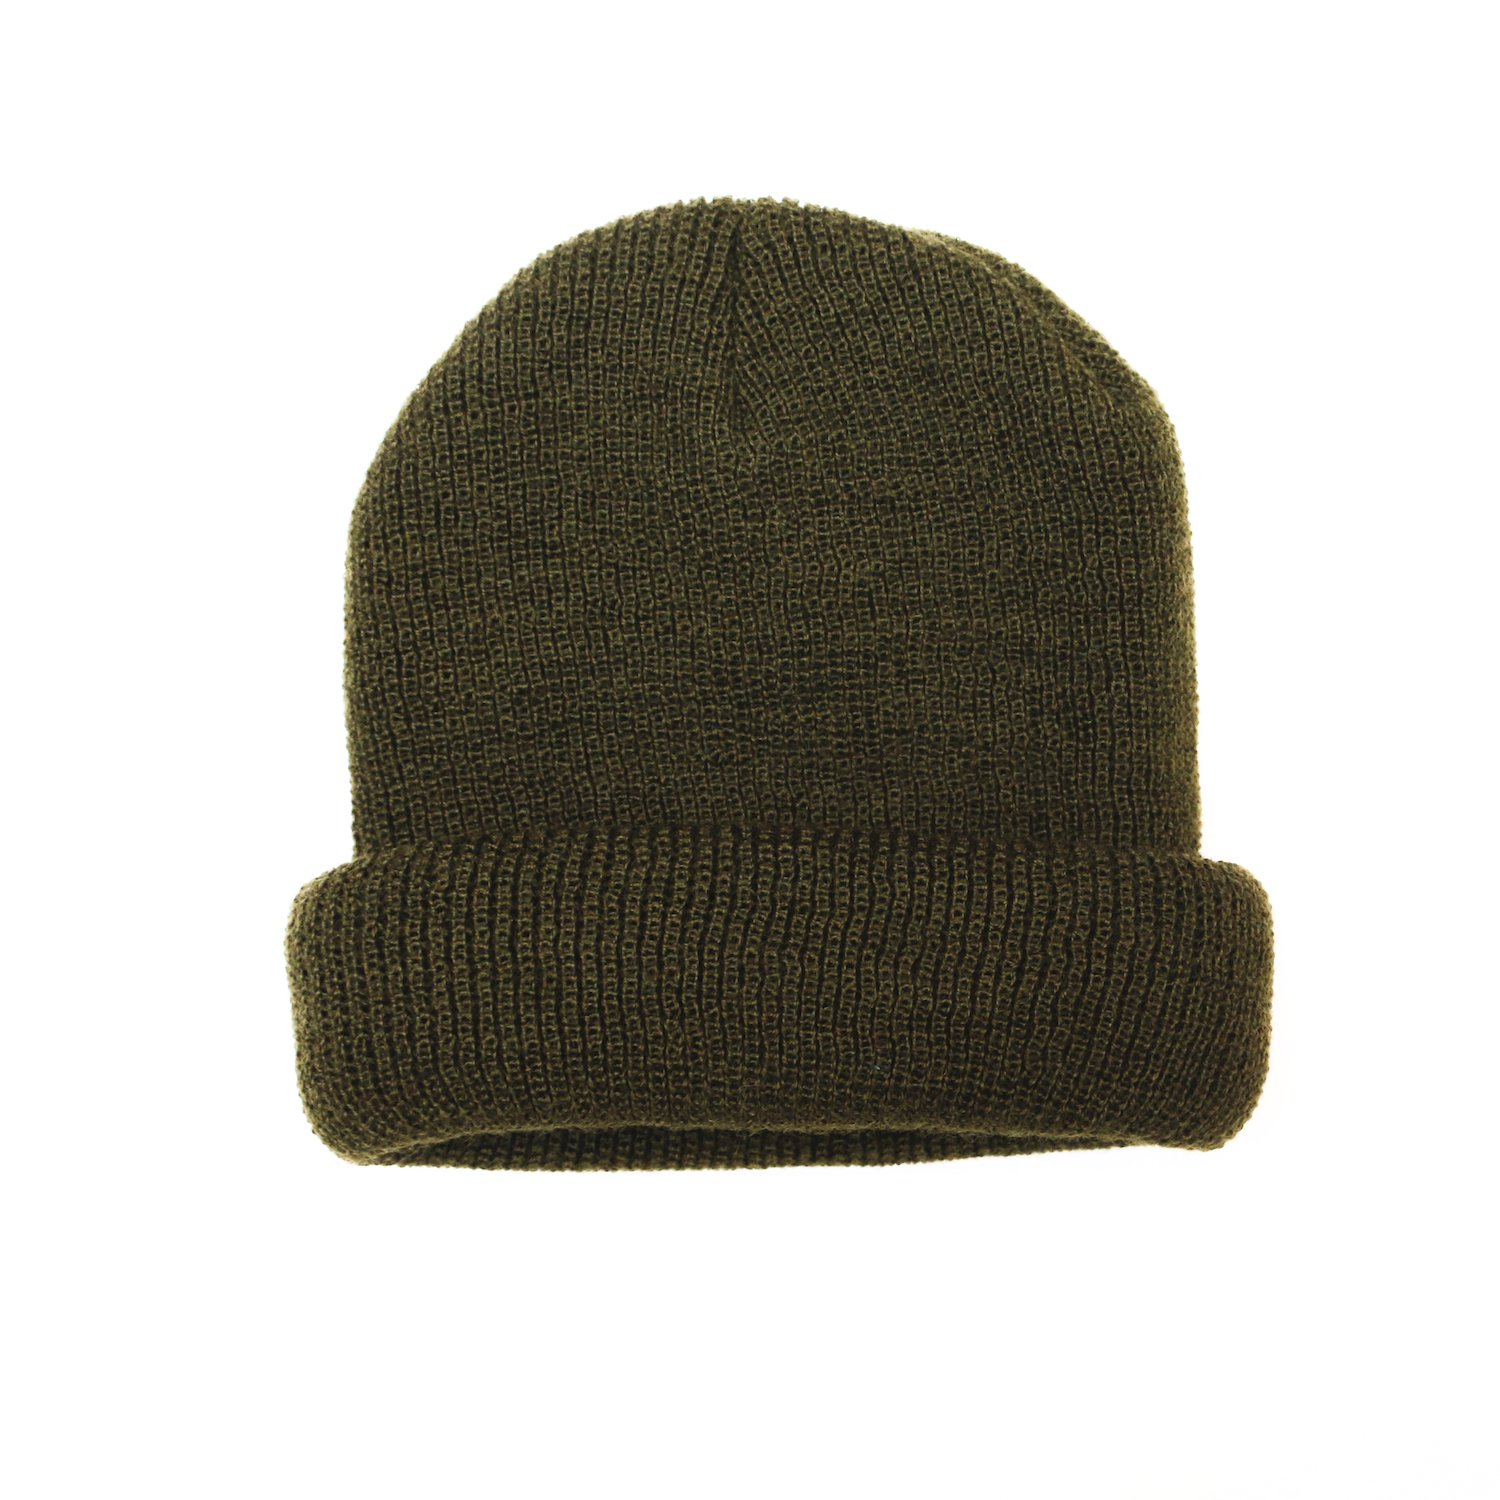 G.I Wool Watch Cap G.Iウールウォッチャップ